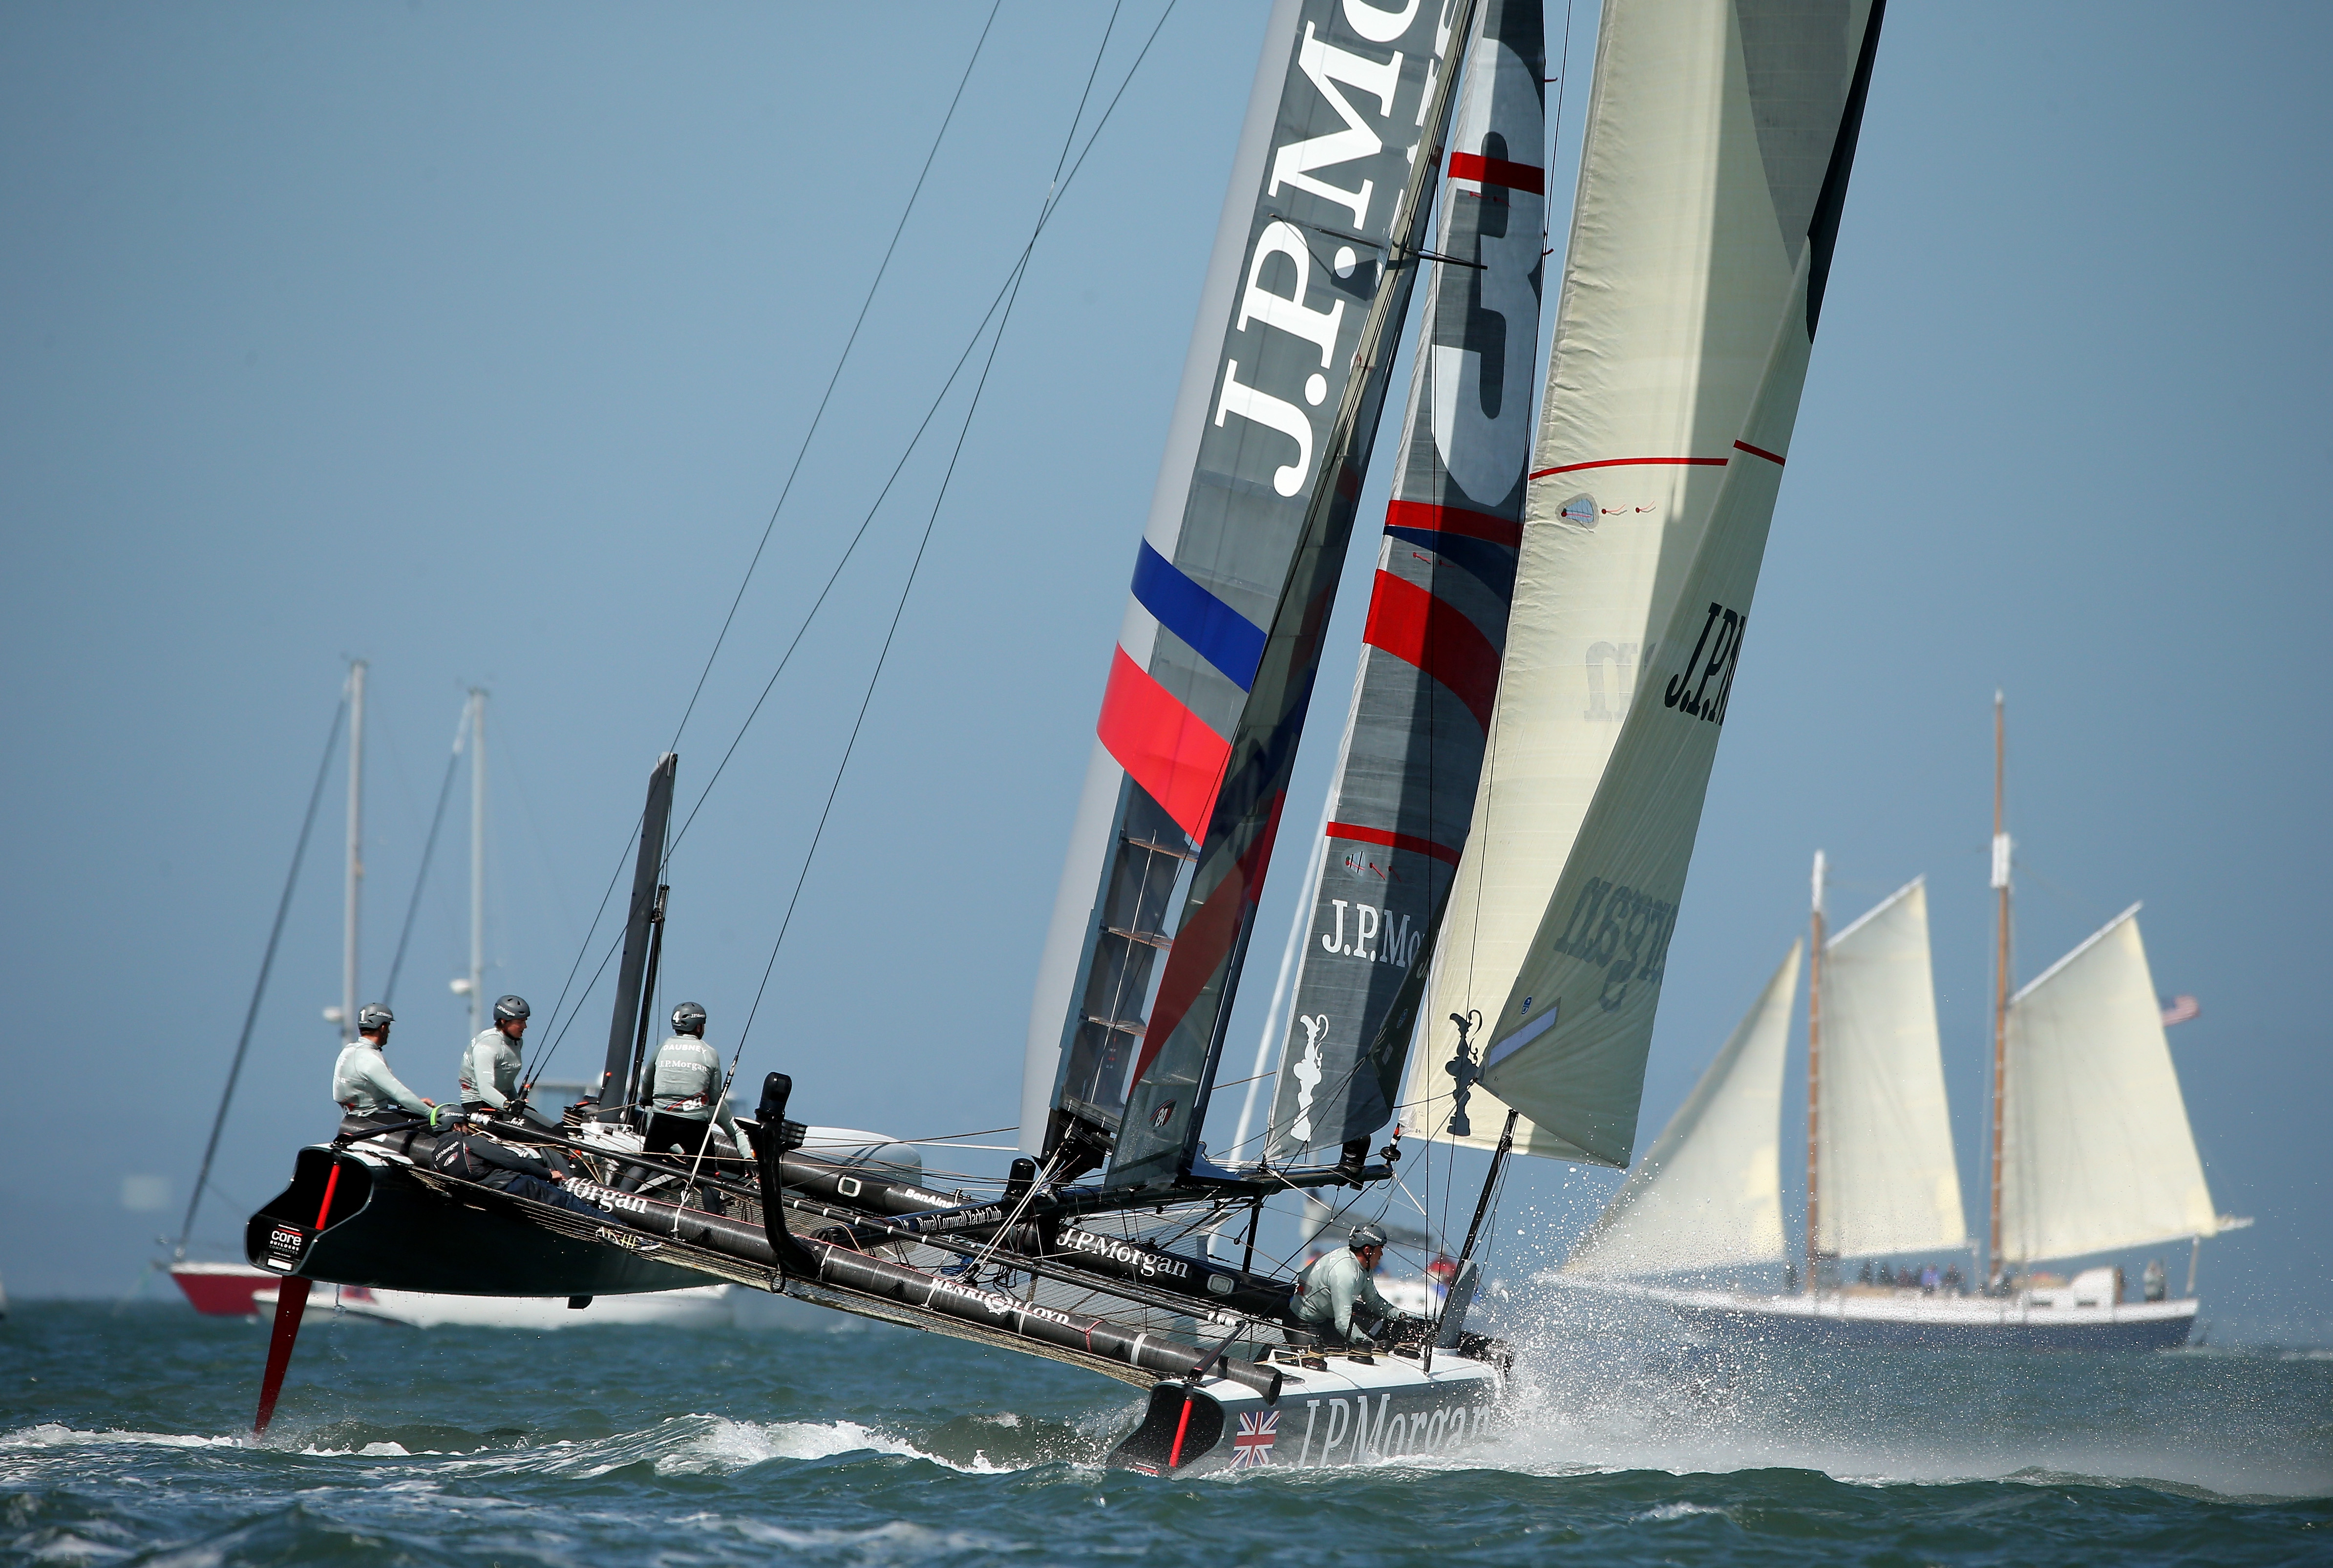 SAN FRANCISCO, CA - AUGUST 24:  J.P. Morgan BAR team skippered by Ben Ainslie competes in a match race during the America's Cup World Series on August 24, 2012 in San Francisco, California.  (Photo by Ezra Shaw/Getty Images)